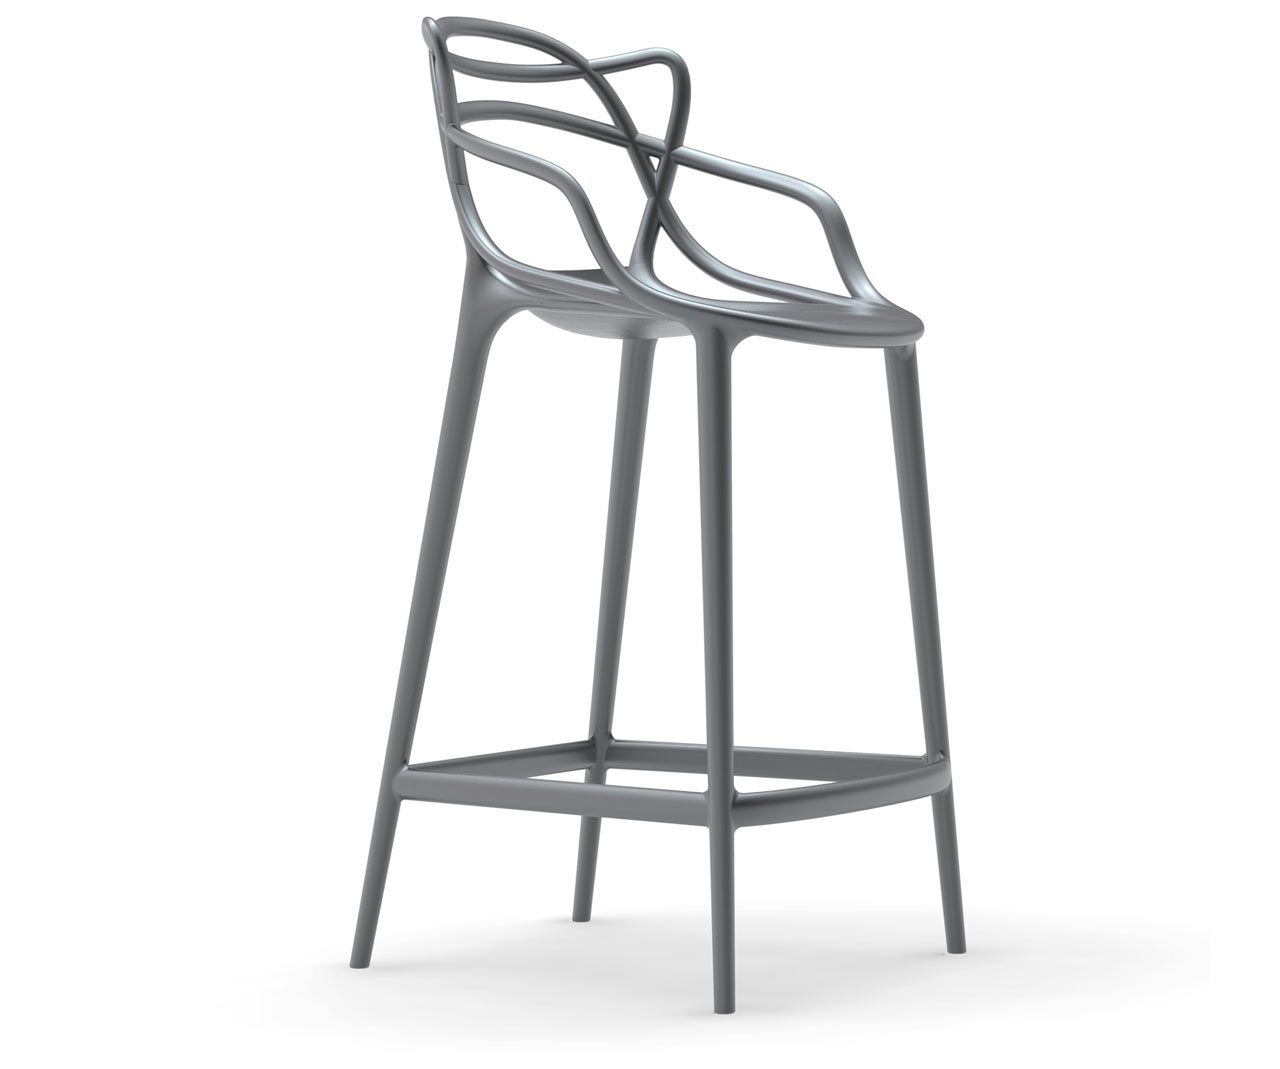 Tabouret De Bar Starck Masters Bar Stool By Starck And Quitllet For Kartell